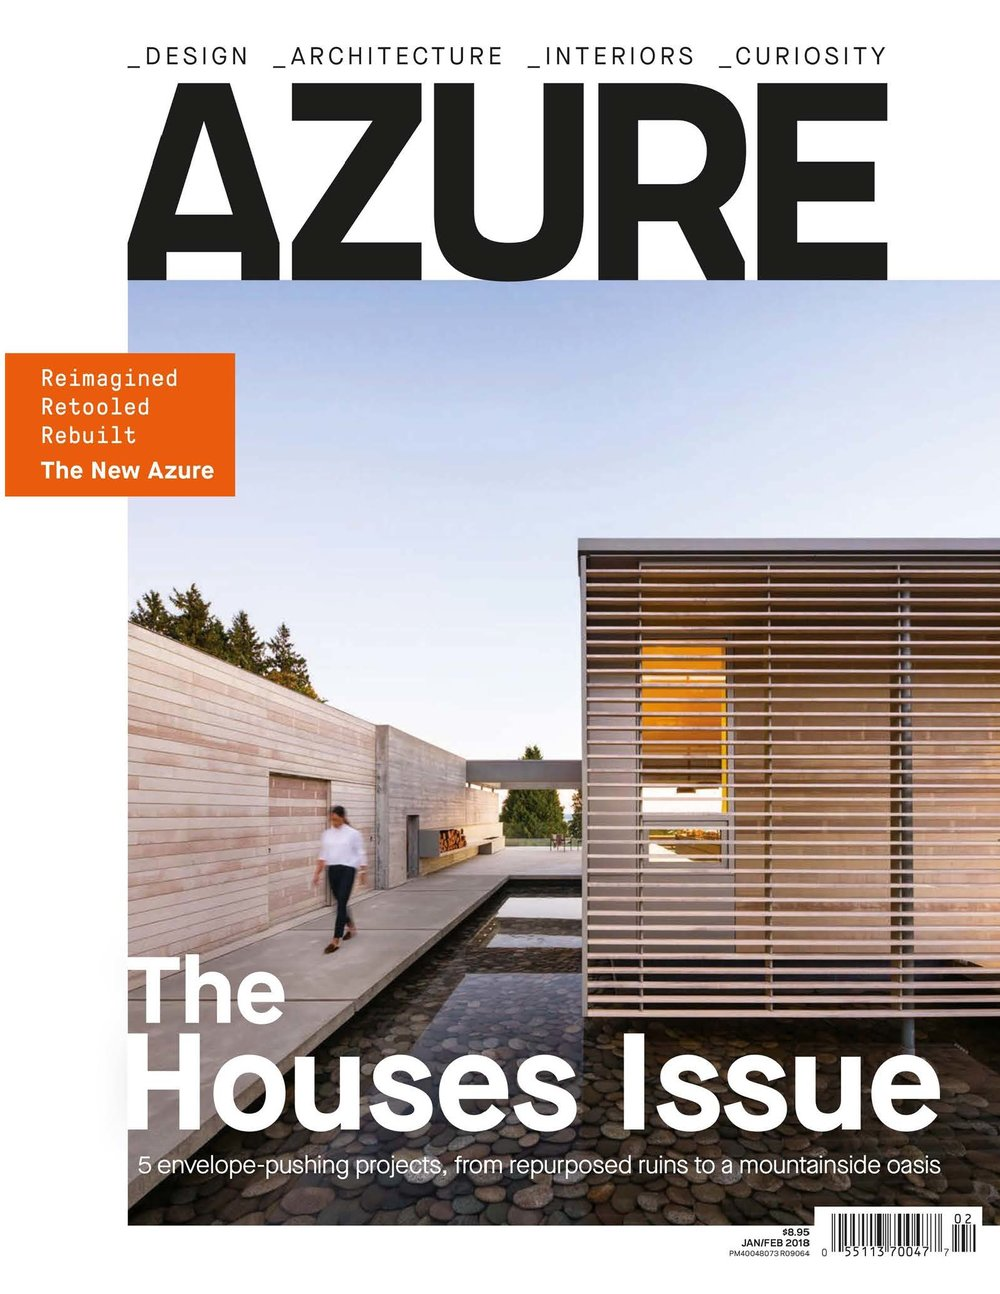 AZURE Magazine January 2018